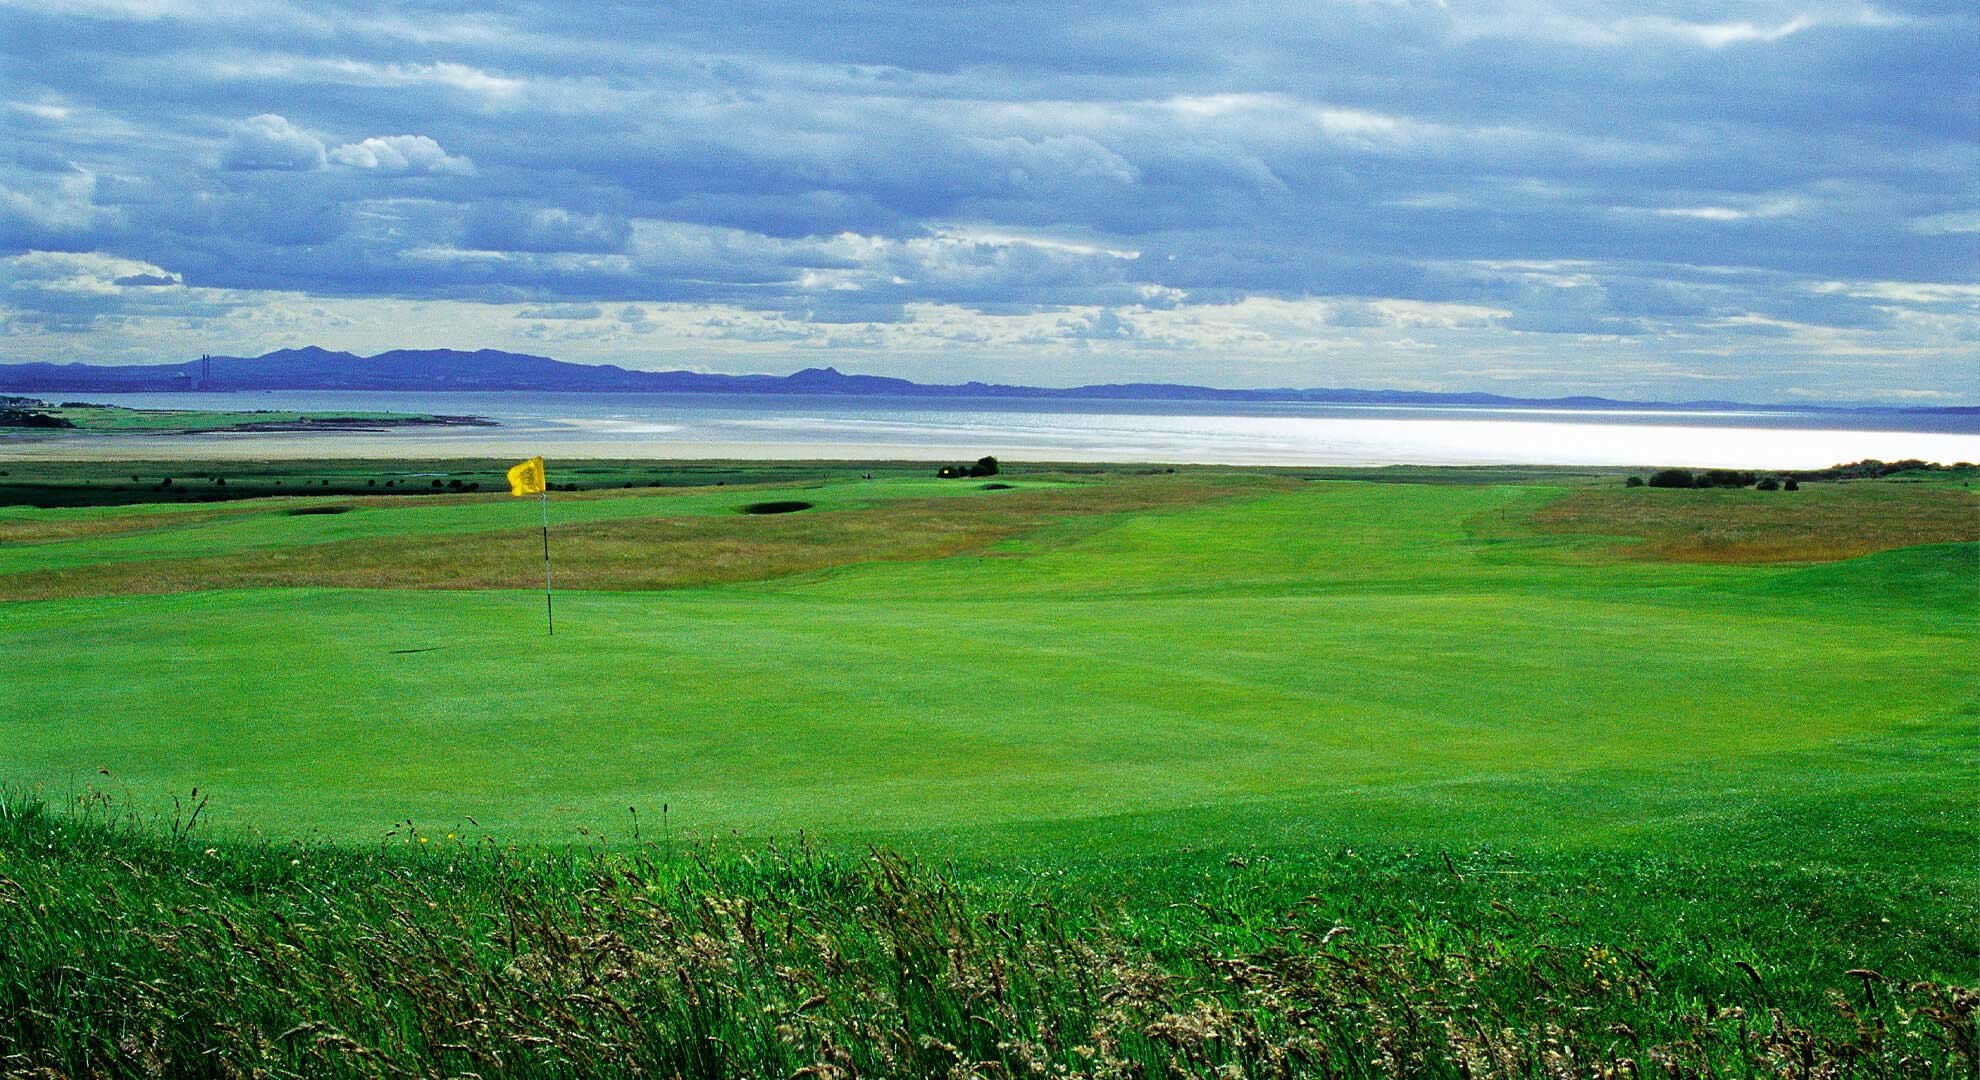 ullane Golf Courses 1 and 2